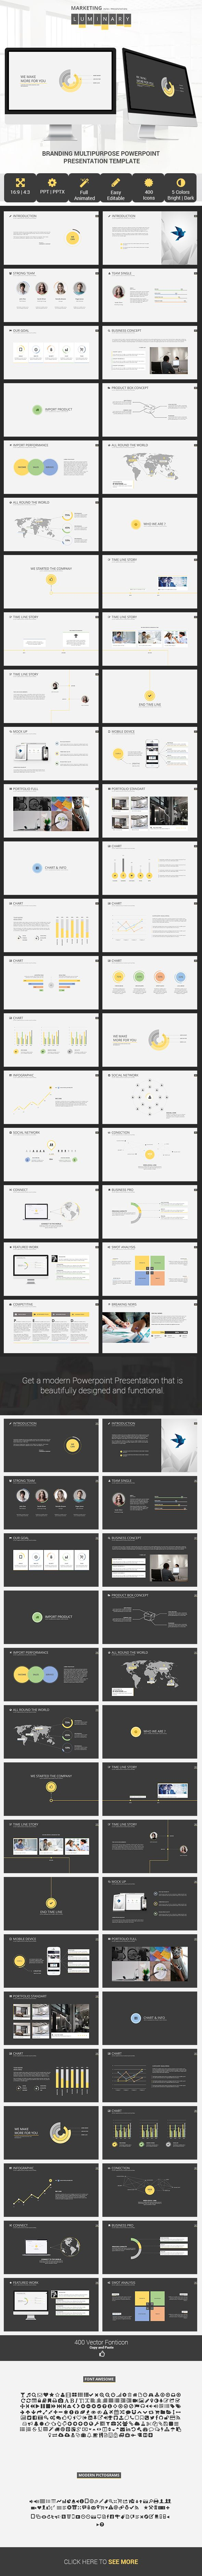 Luminary Business Template  Sample Business Plan Powerpoint Headings   • Competitive Landscape • Marketing Promotions • Pricing Strategy • Financial Projection • Company History • Sales Strategy • SWOT Analysis • Sales and Distribution